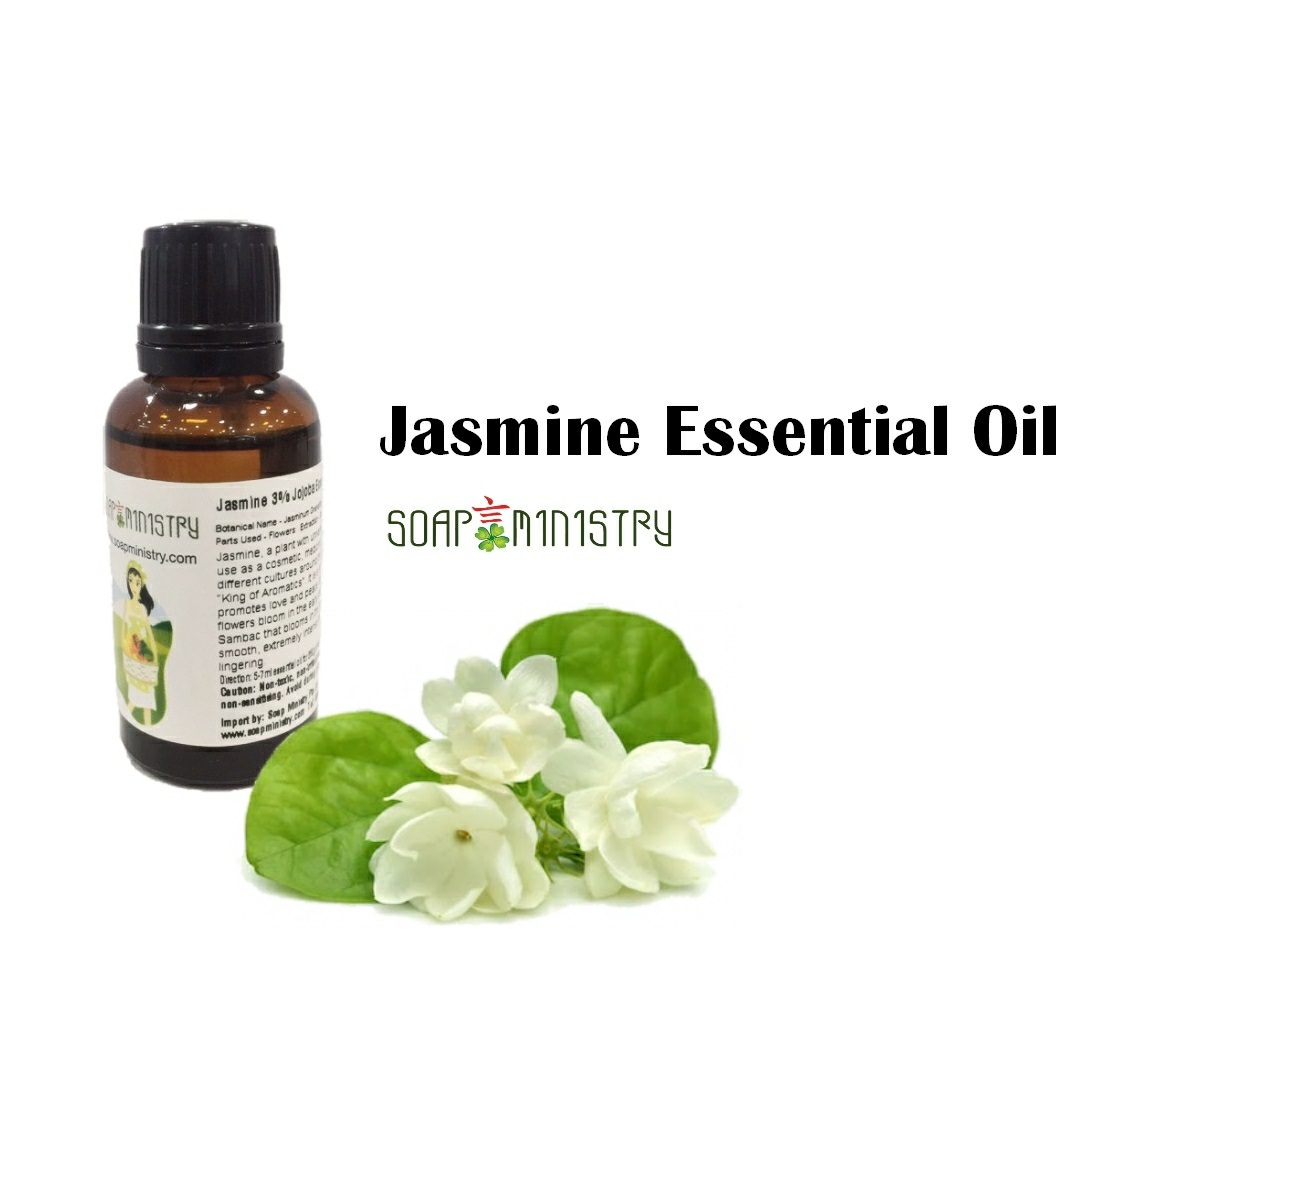 Jasmine 3 Jojoba Essential Oil 1L